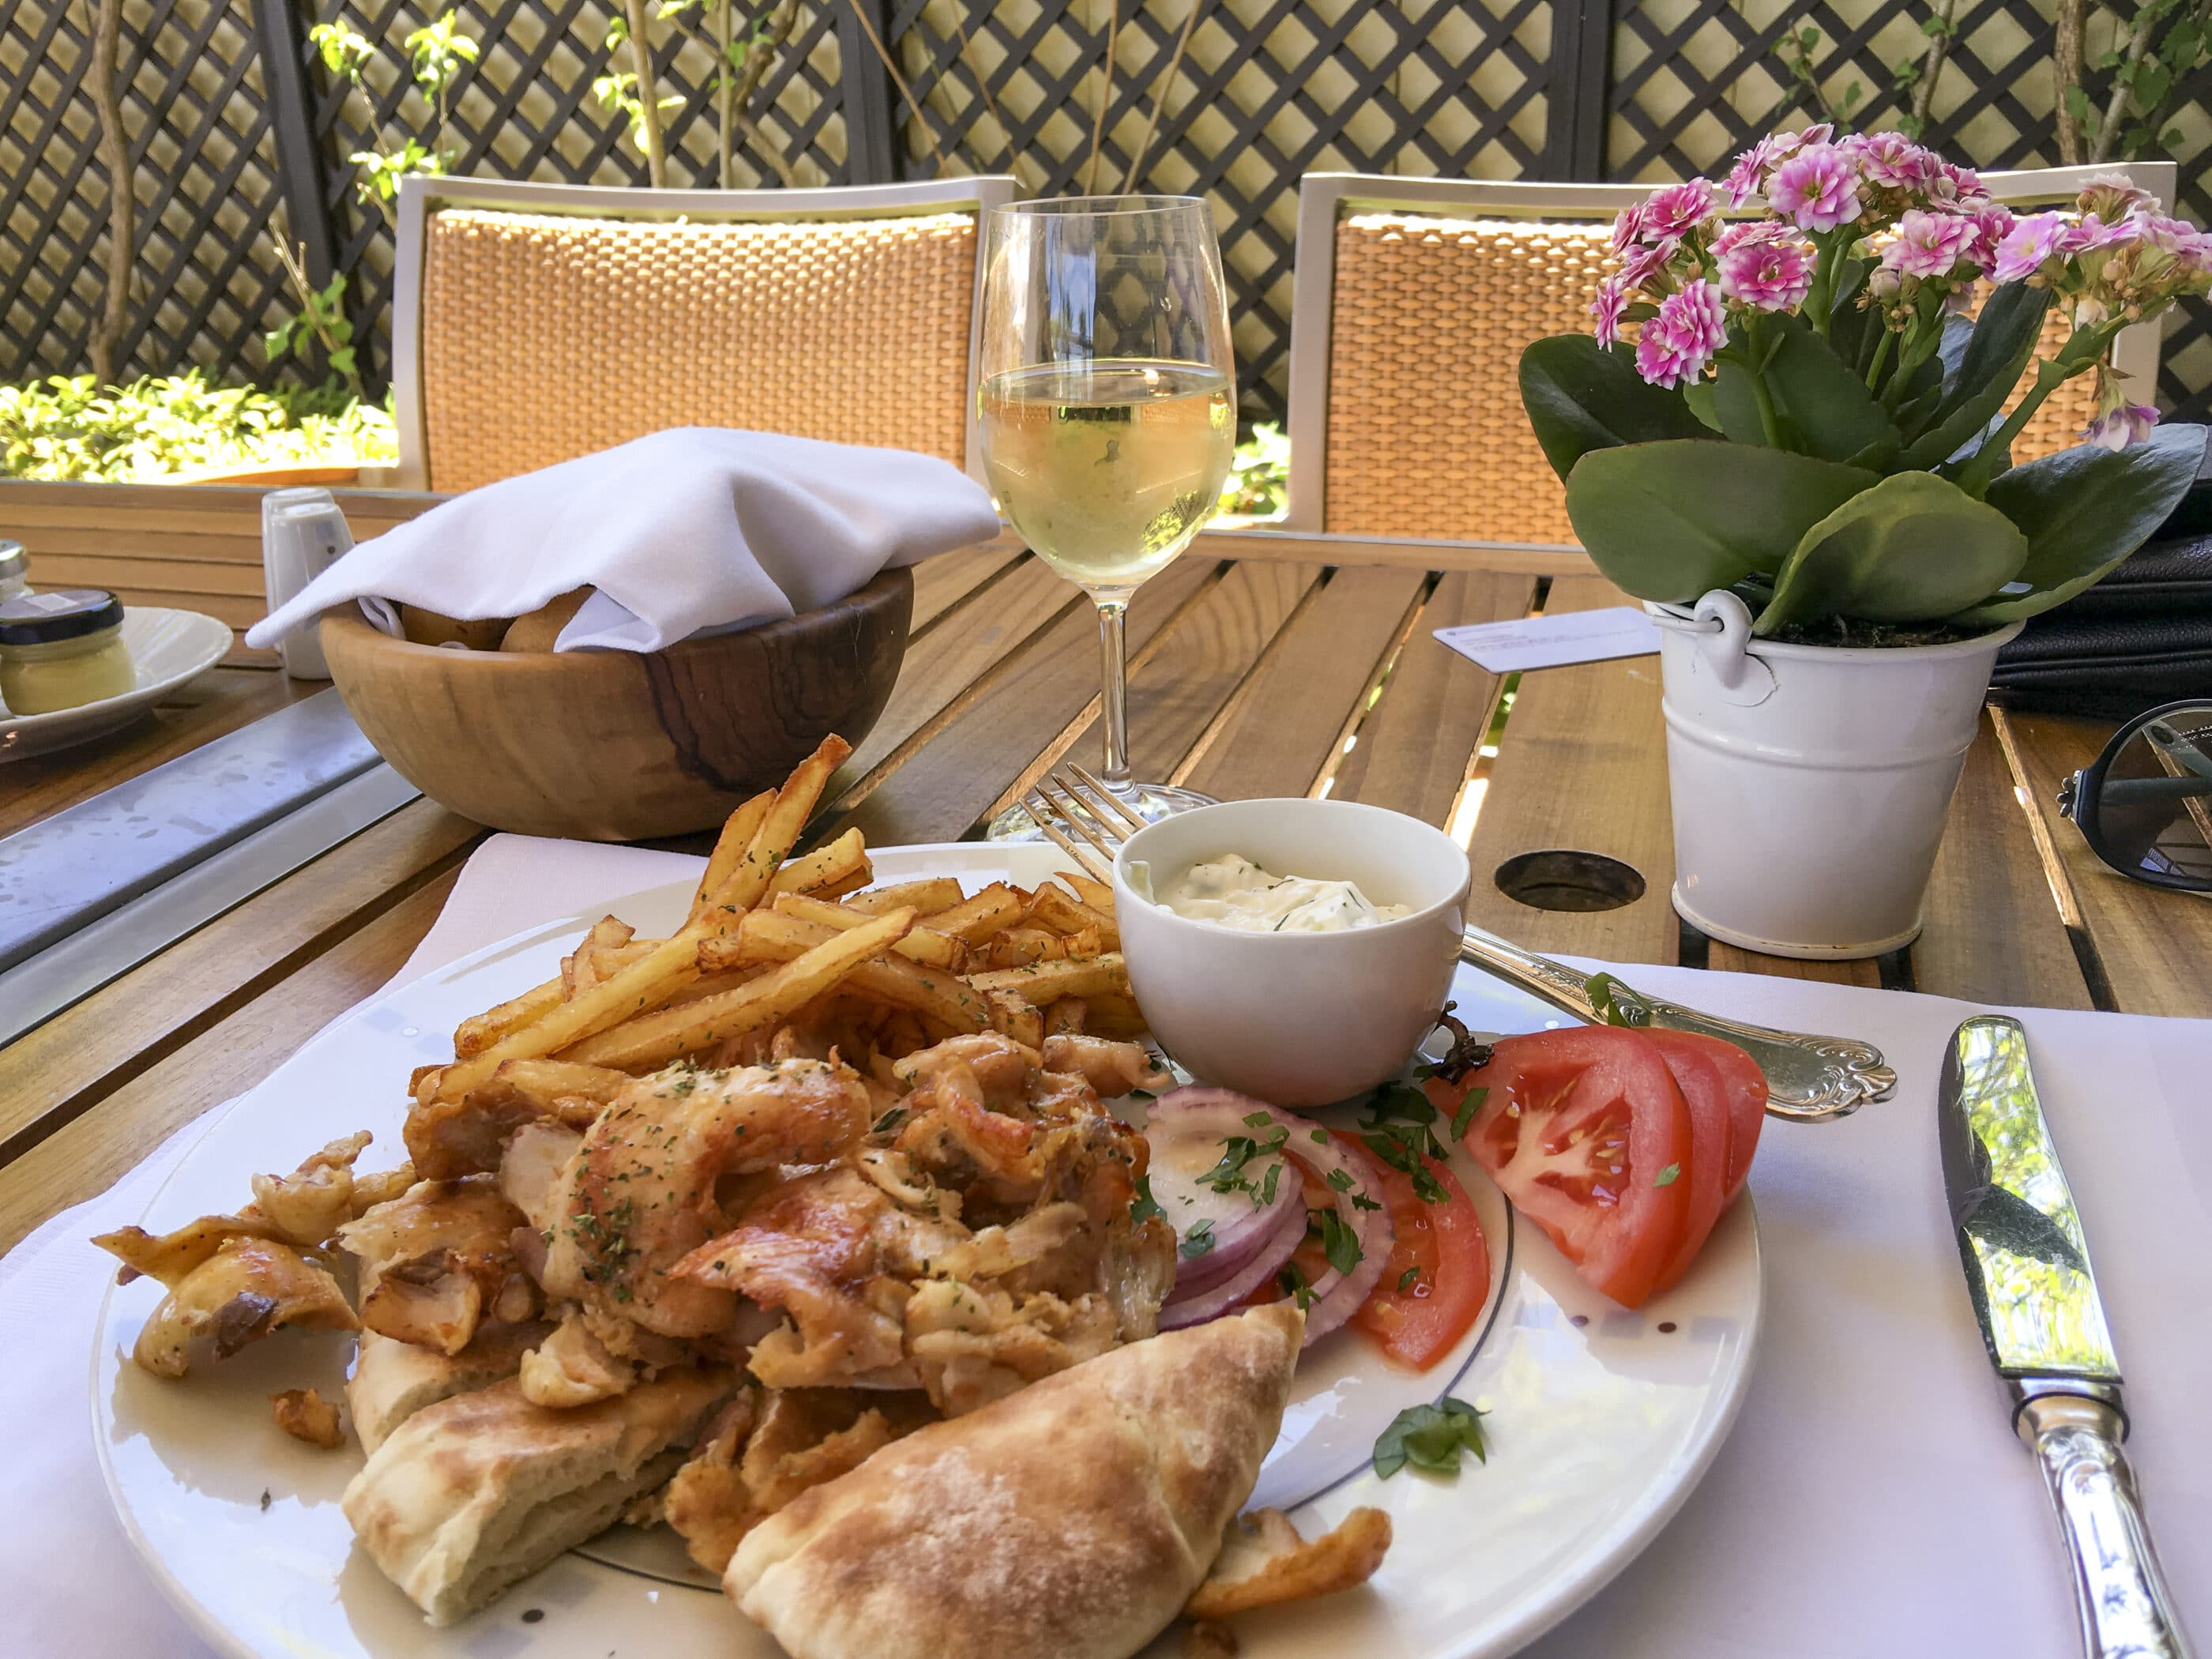 Chicken souvlaki plate with a glass of white wine at the GB Bar and Grill.